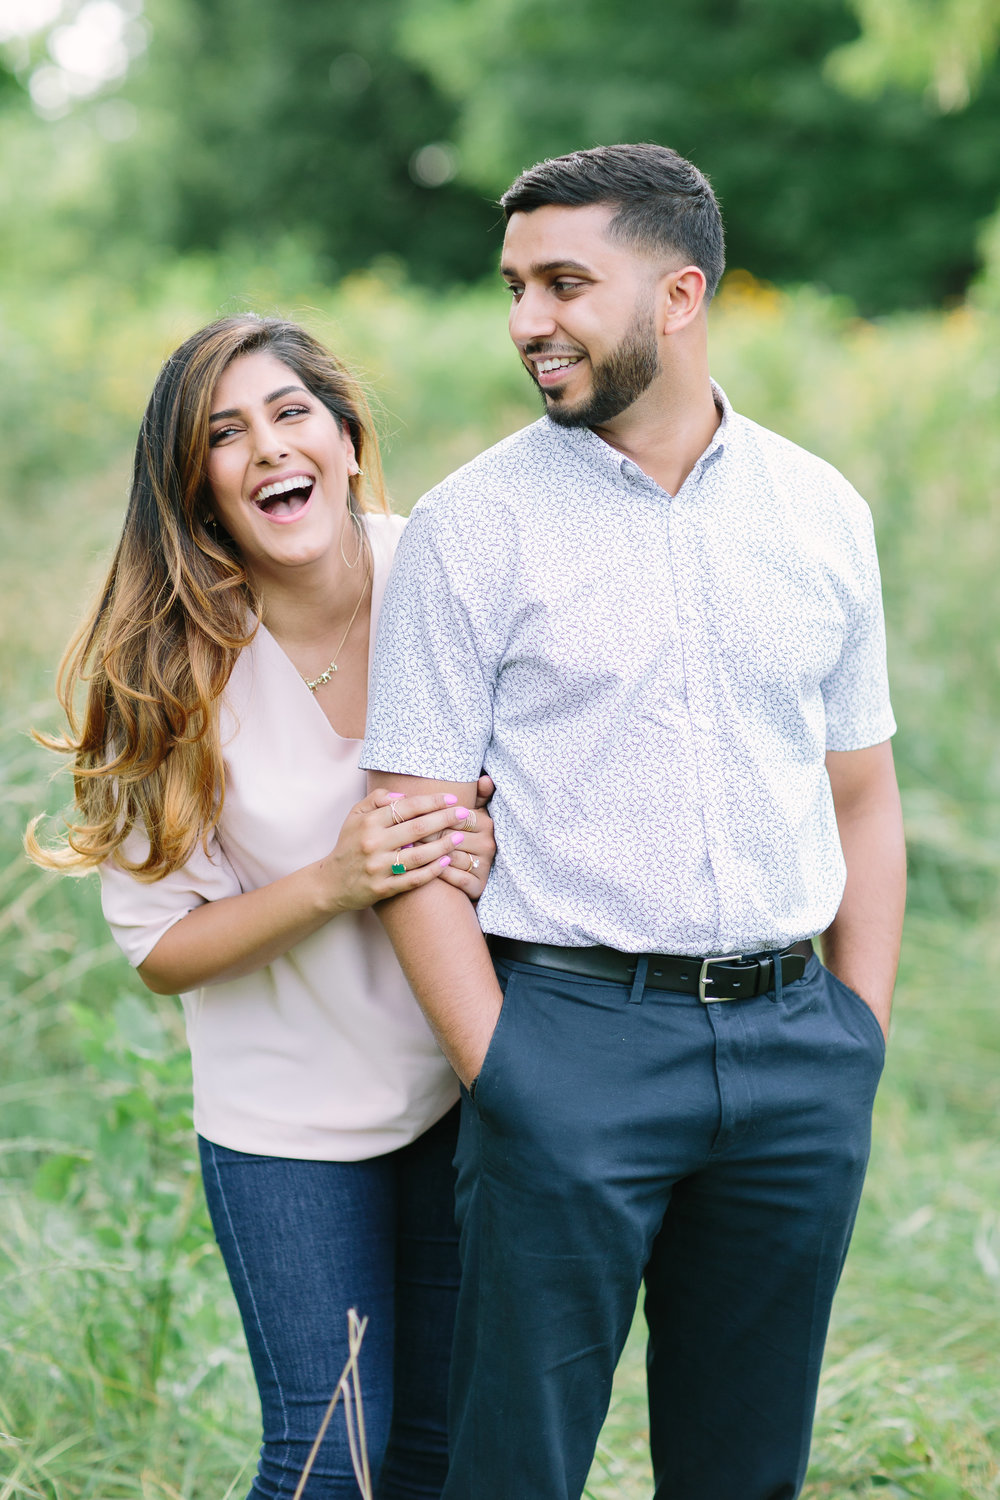 Nicodem Creative_Purohit Engagement_Montrose Harbor Chicago_Blog-1.jpg